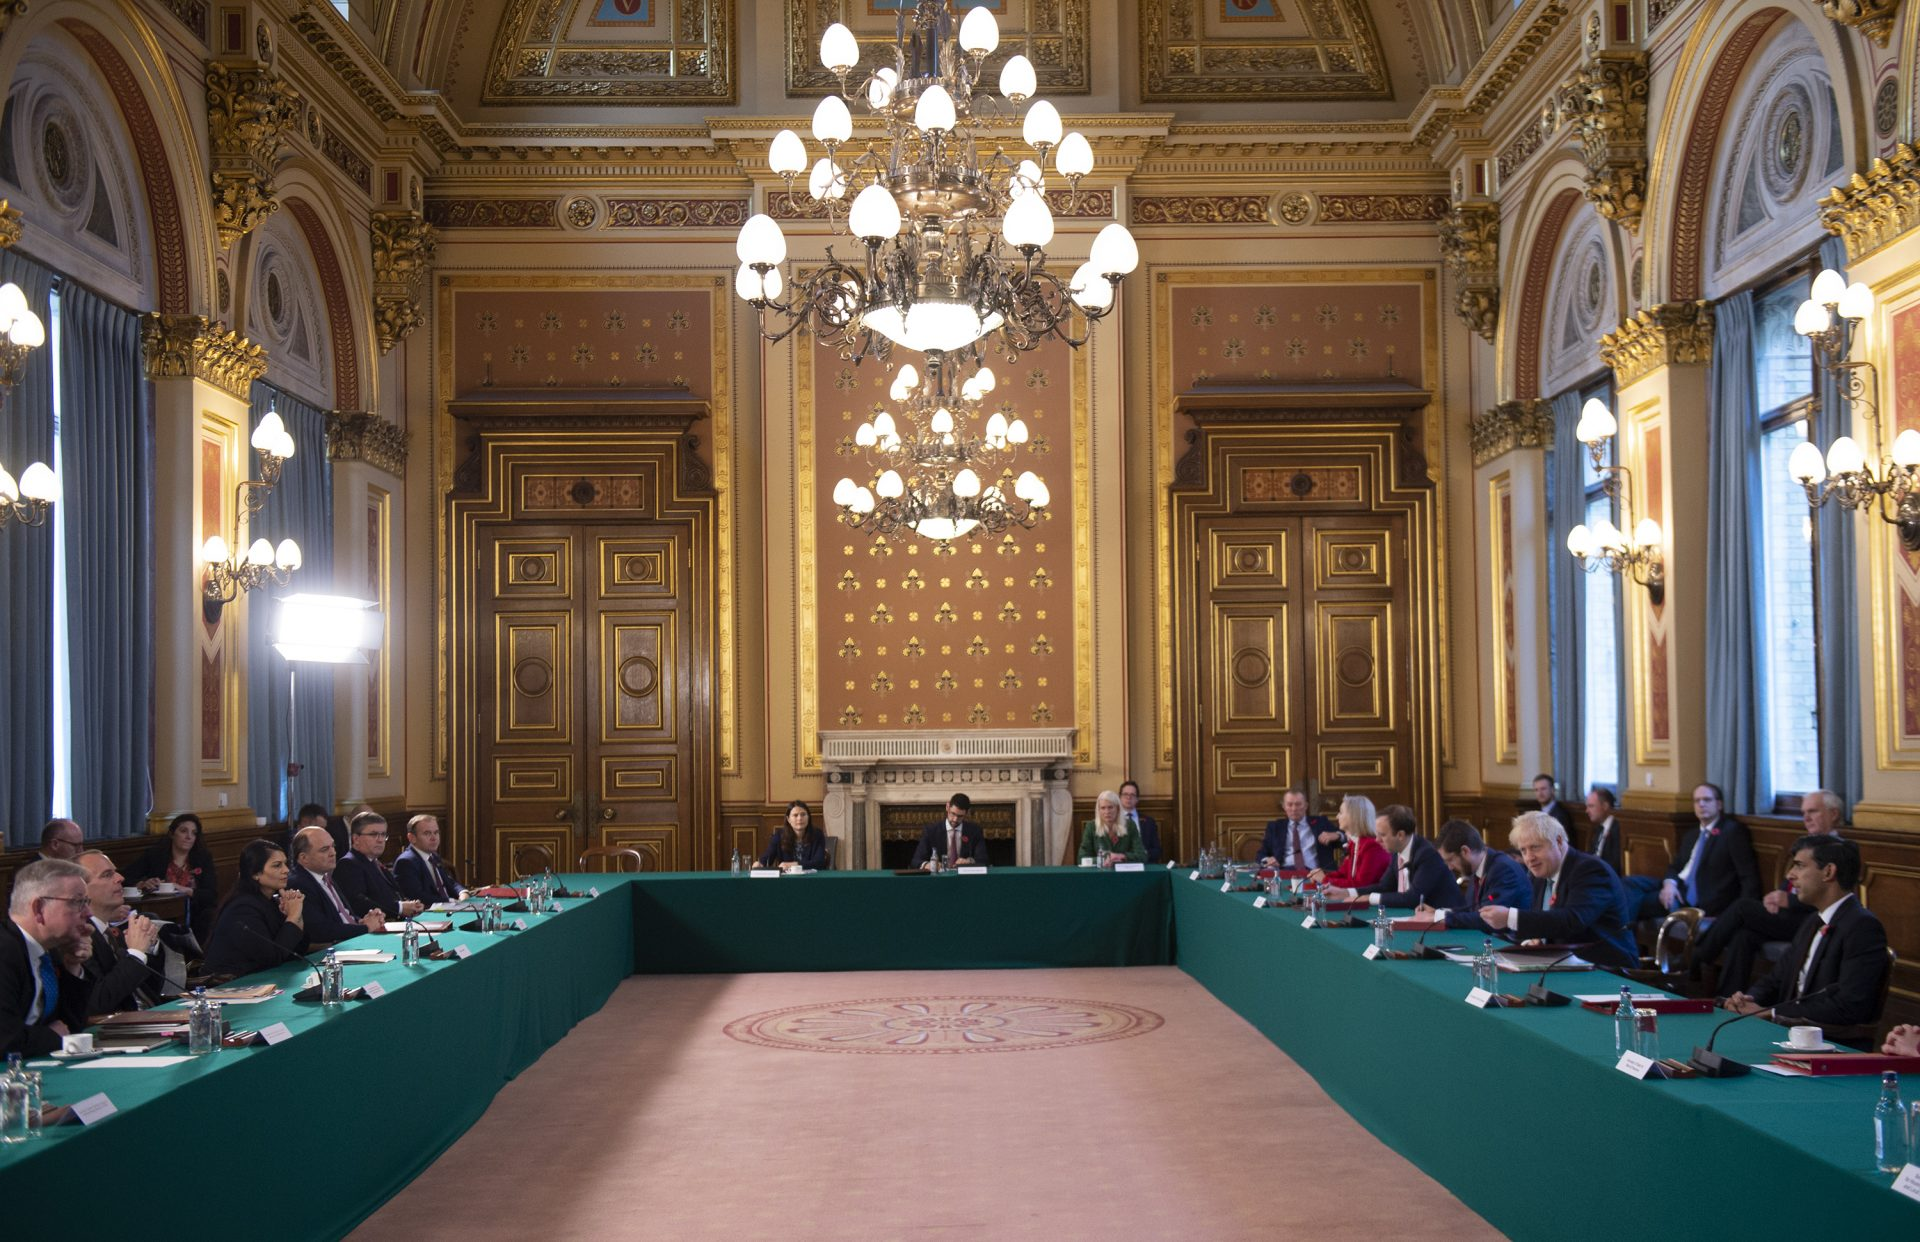 Boris Johnson chairs a socially-distanced Cabinet meeting at the foreign office last November. Photo: Eddie Mulholland - WPA Pool/Getty Images